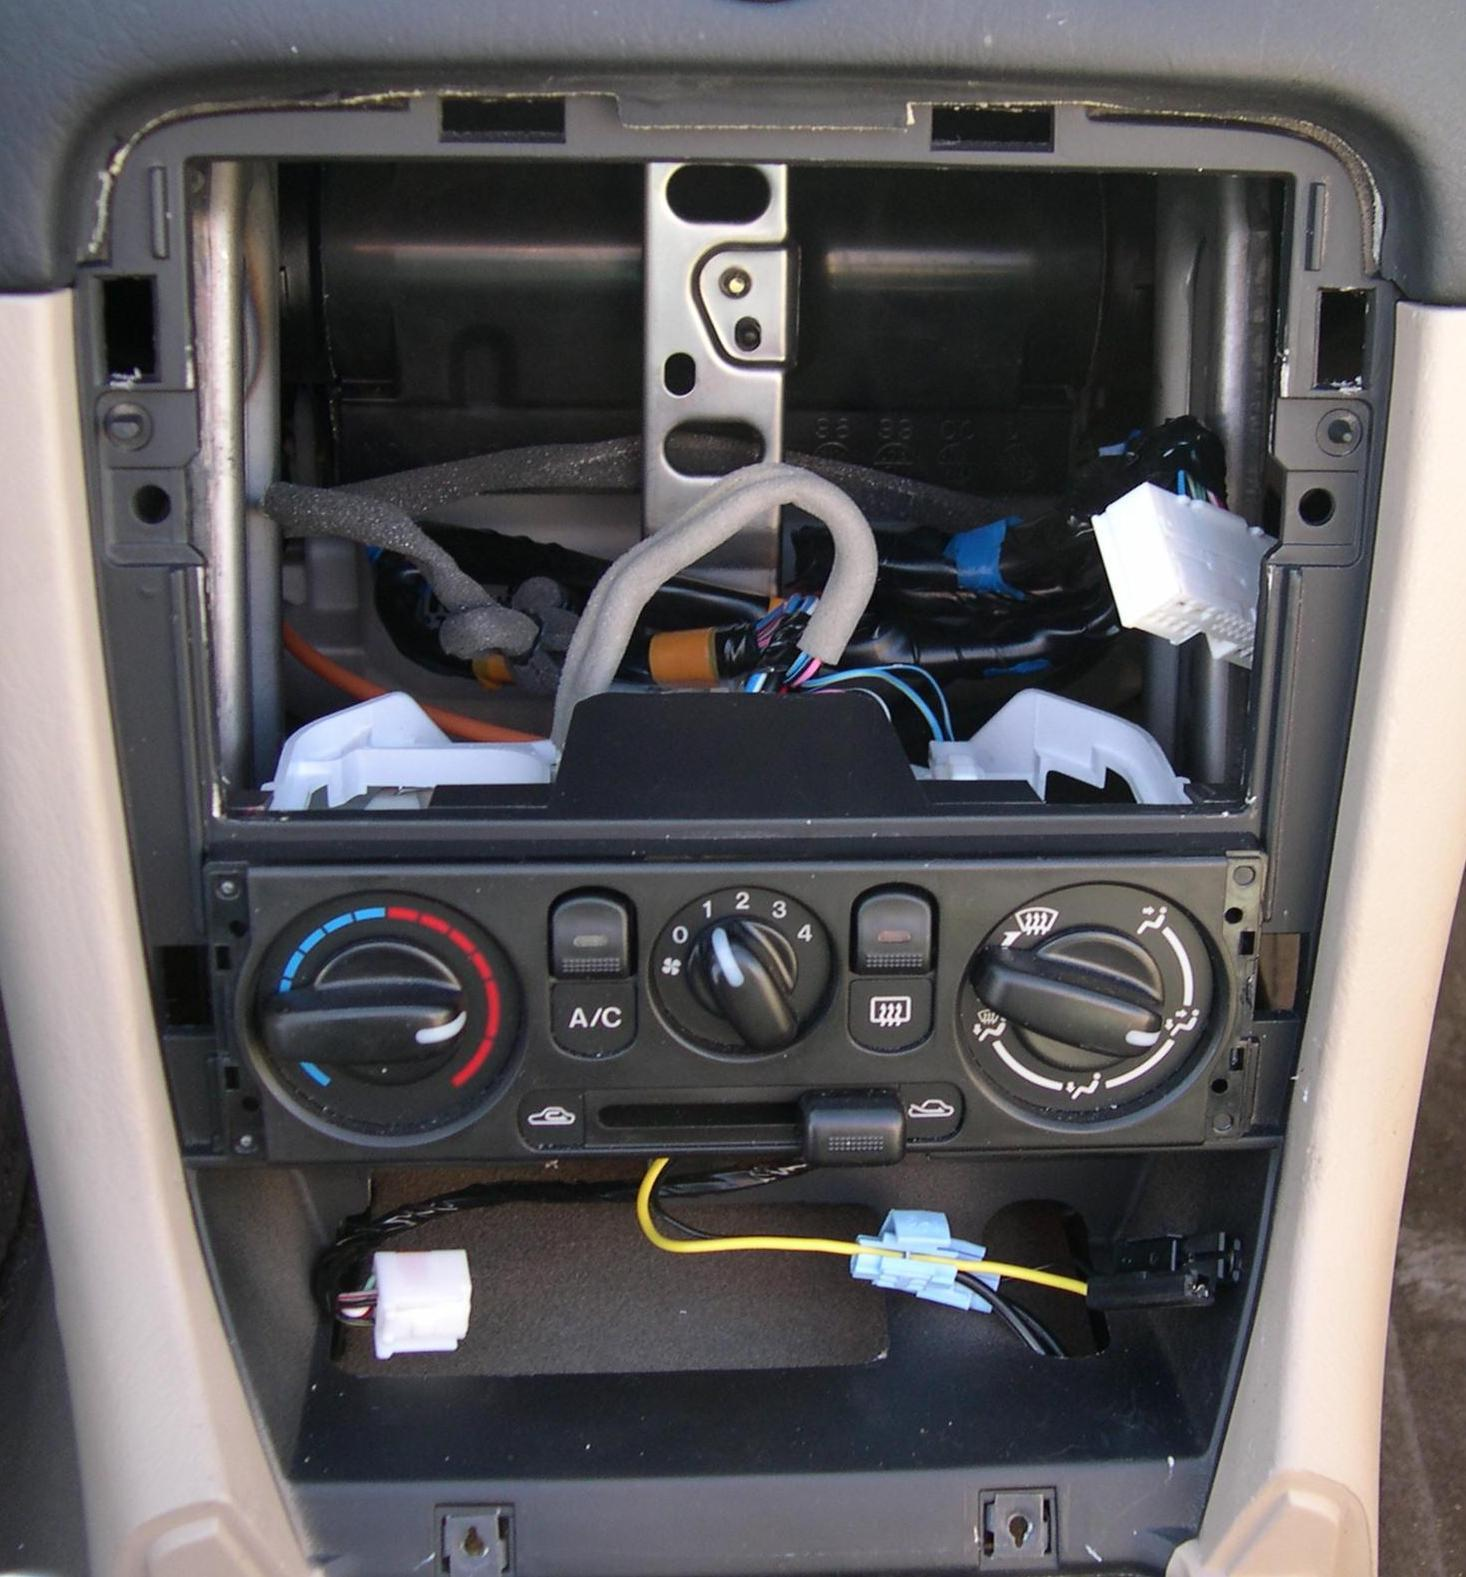 For Car Speakers To Amp Wiring Diagram The Mazda Nb Oem Audio System Faq